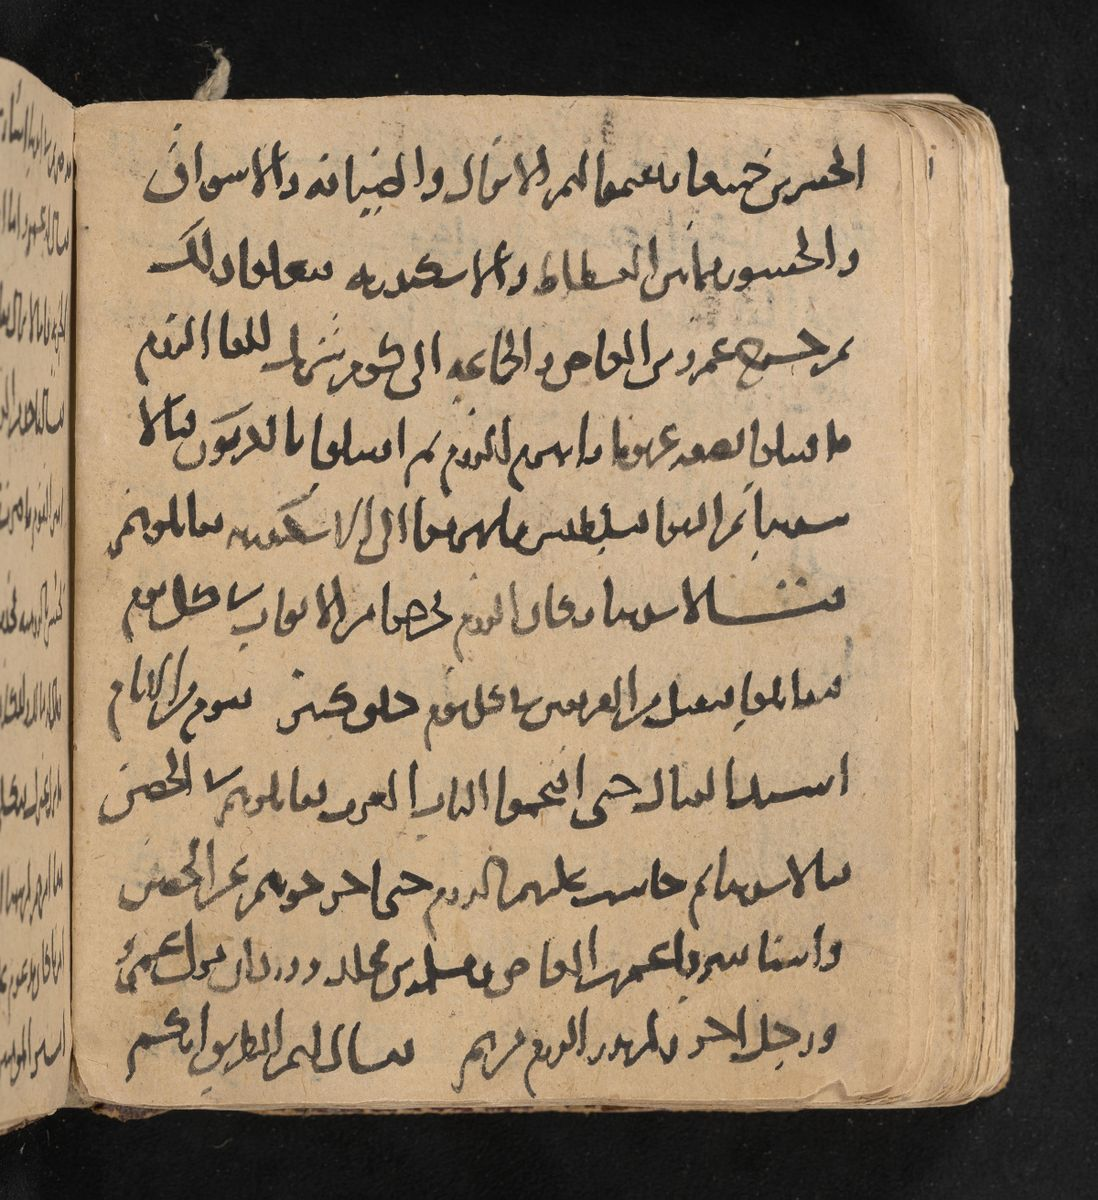 UCLA Library to Host Digital Archive of Ancient Arabic and Syriac Manuscripts